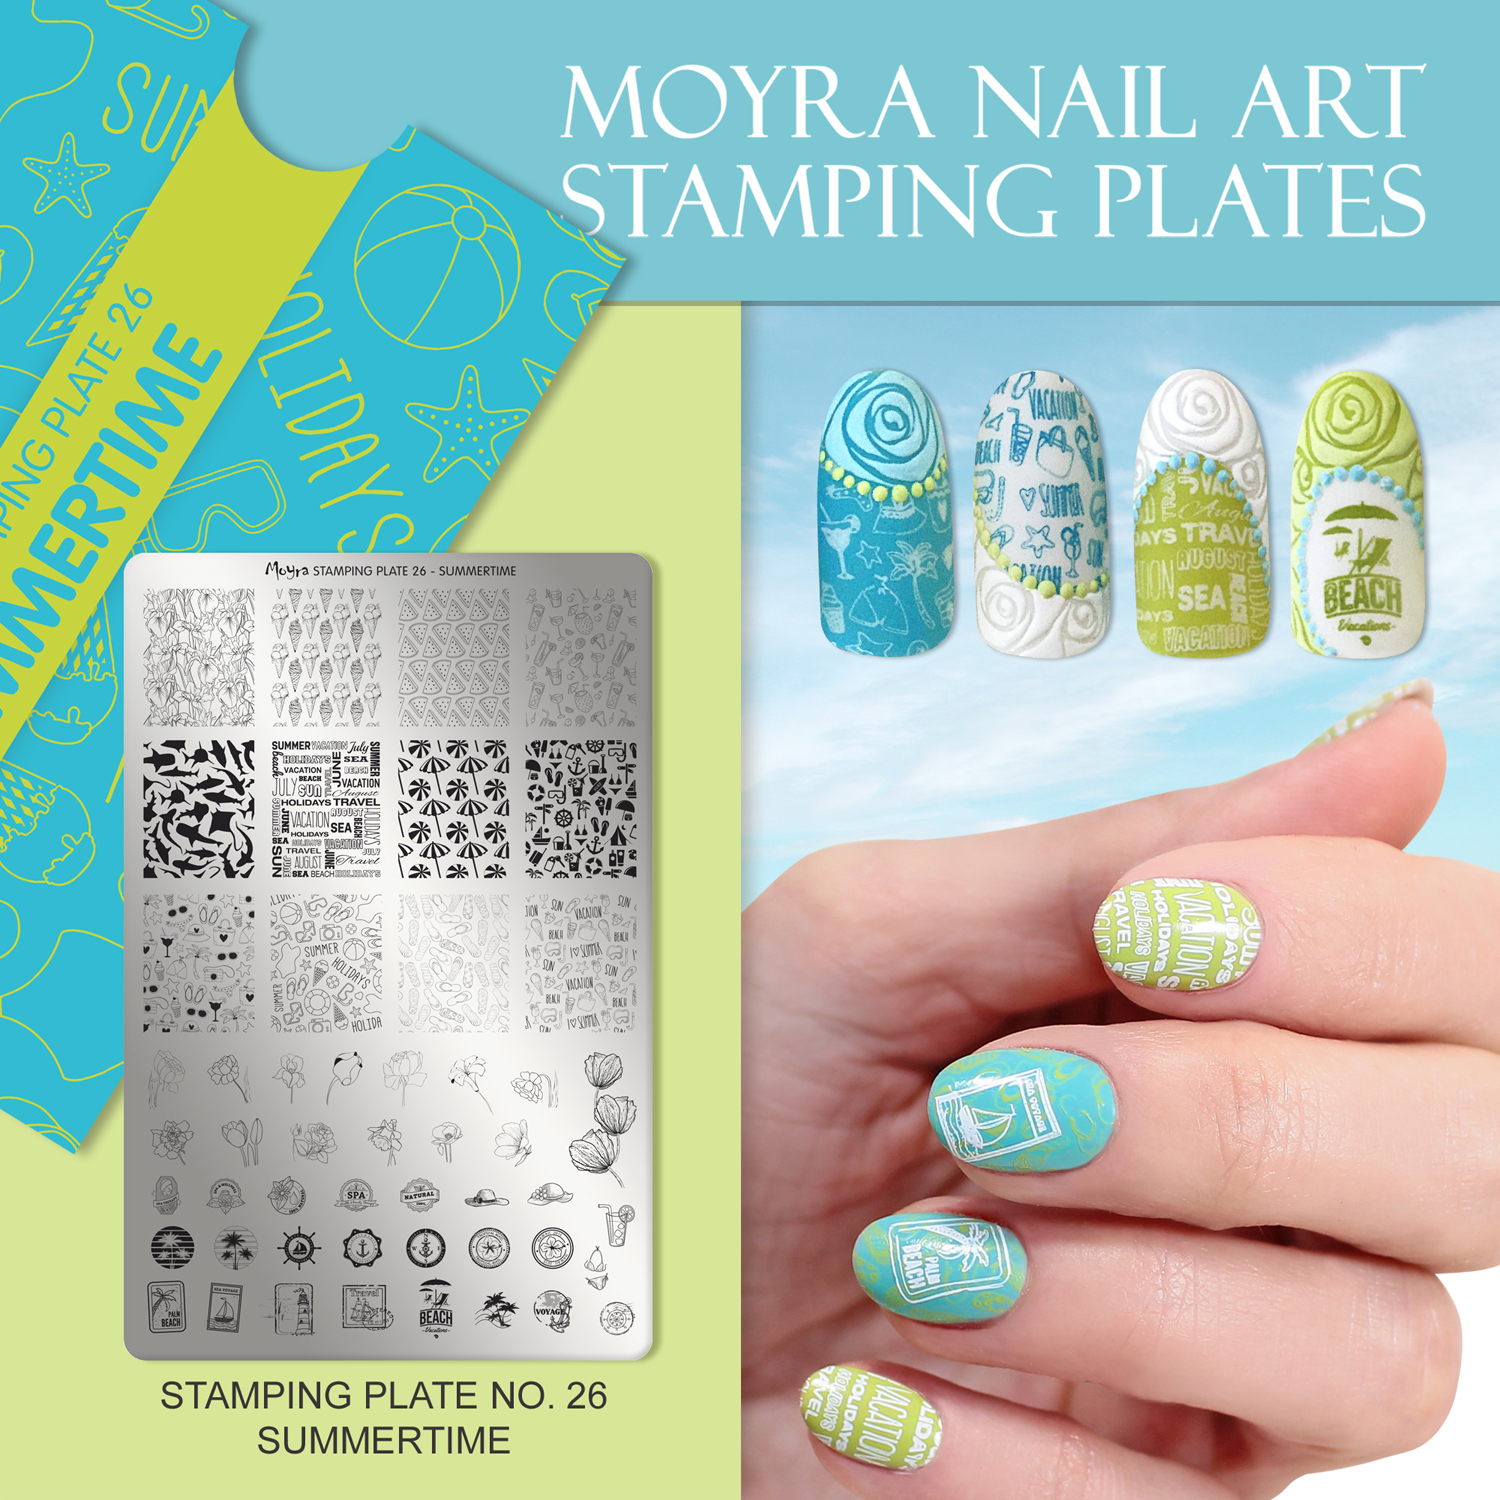 Nail design with Moyra stamping plate No. 26 Summertime